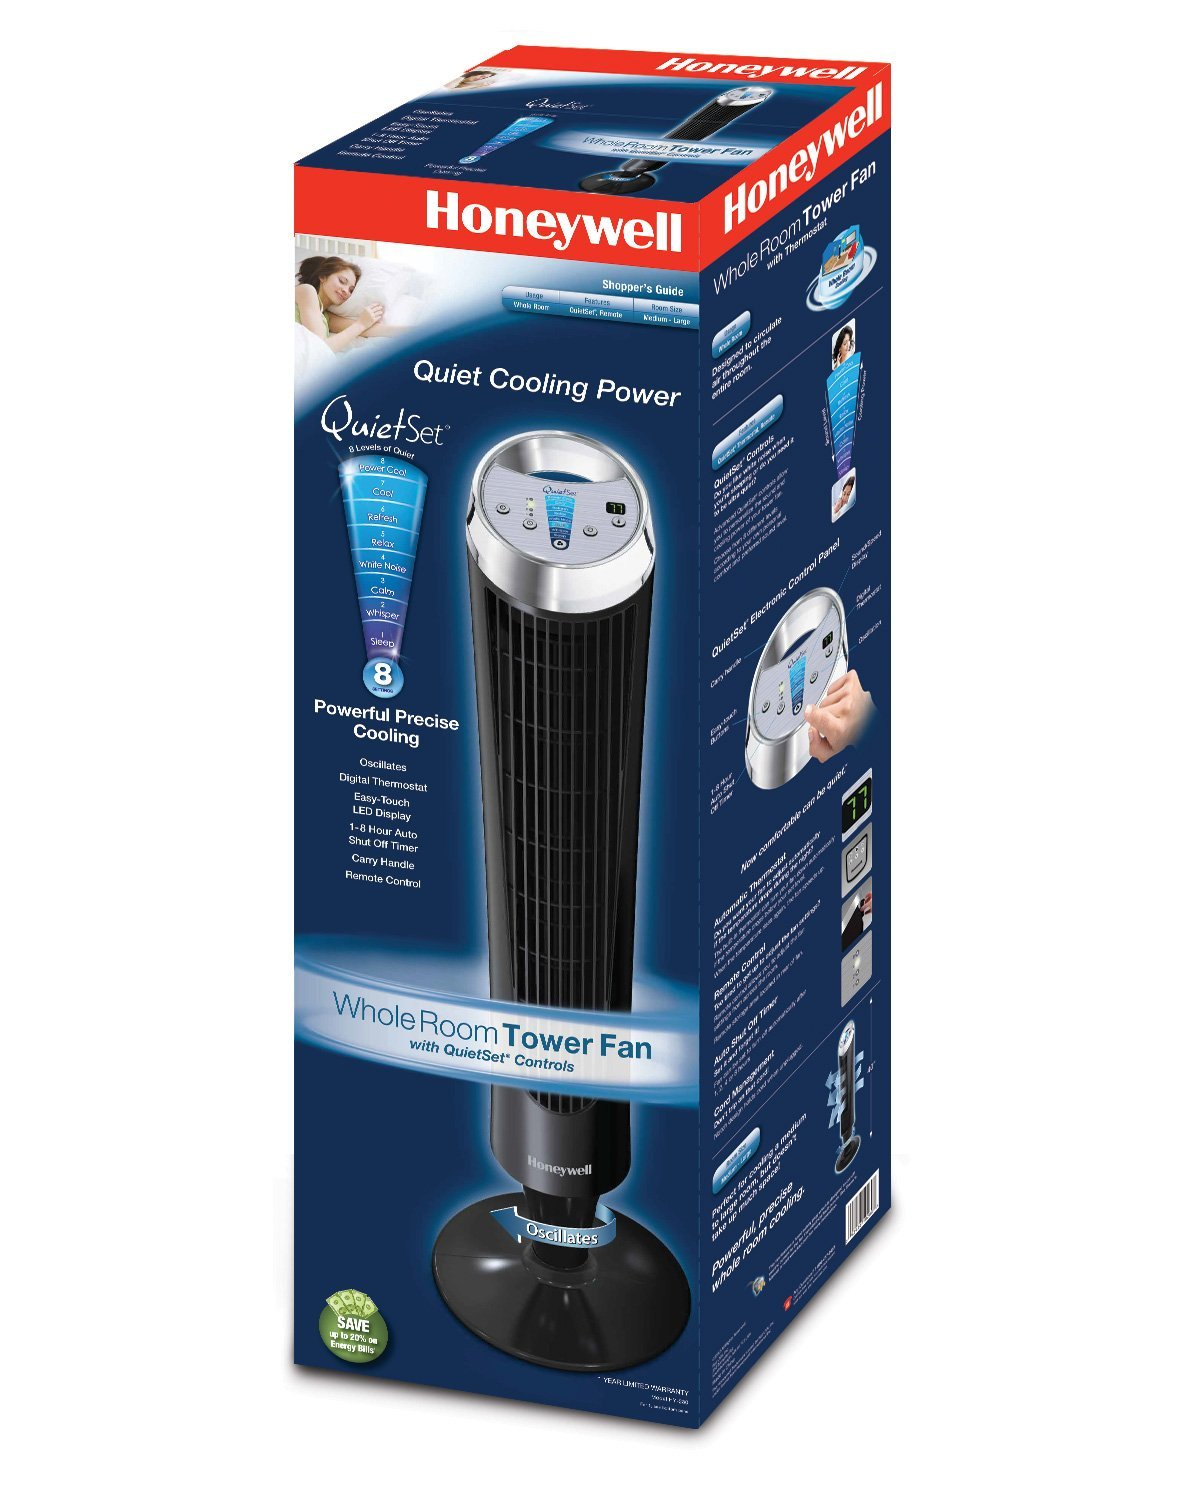 Honeywell Quietset Whole Room Tower Fan Hy 280 Review